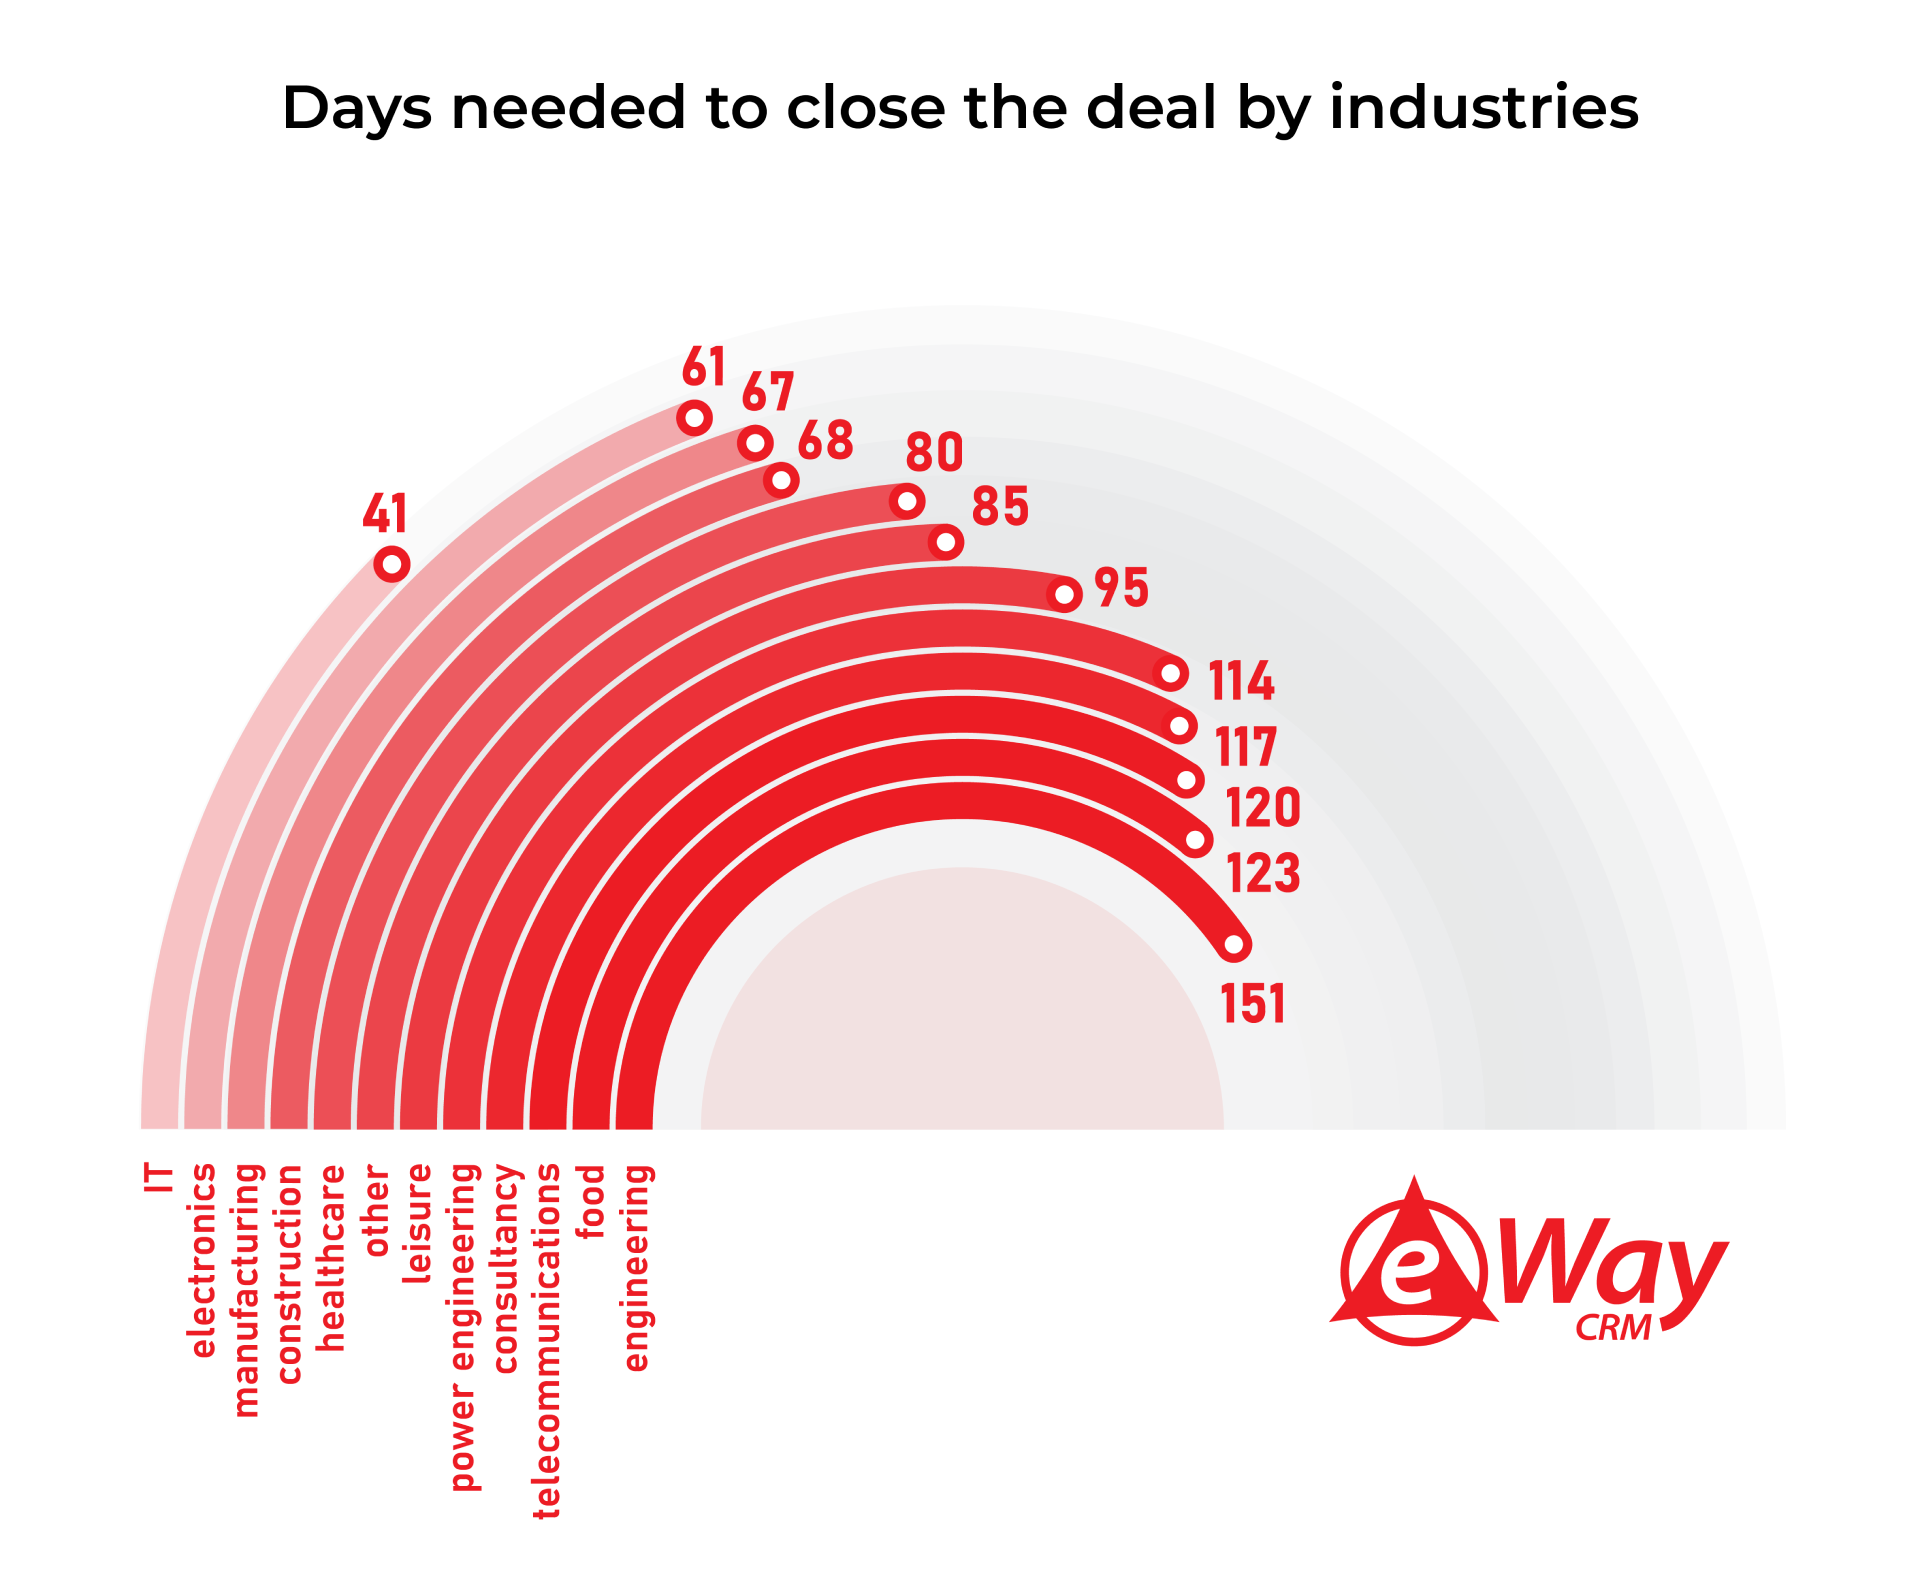 Days needed to close the deal by industries